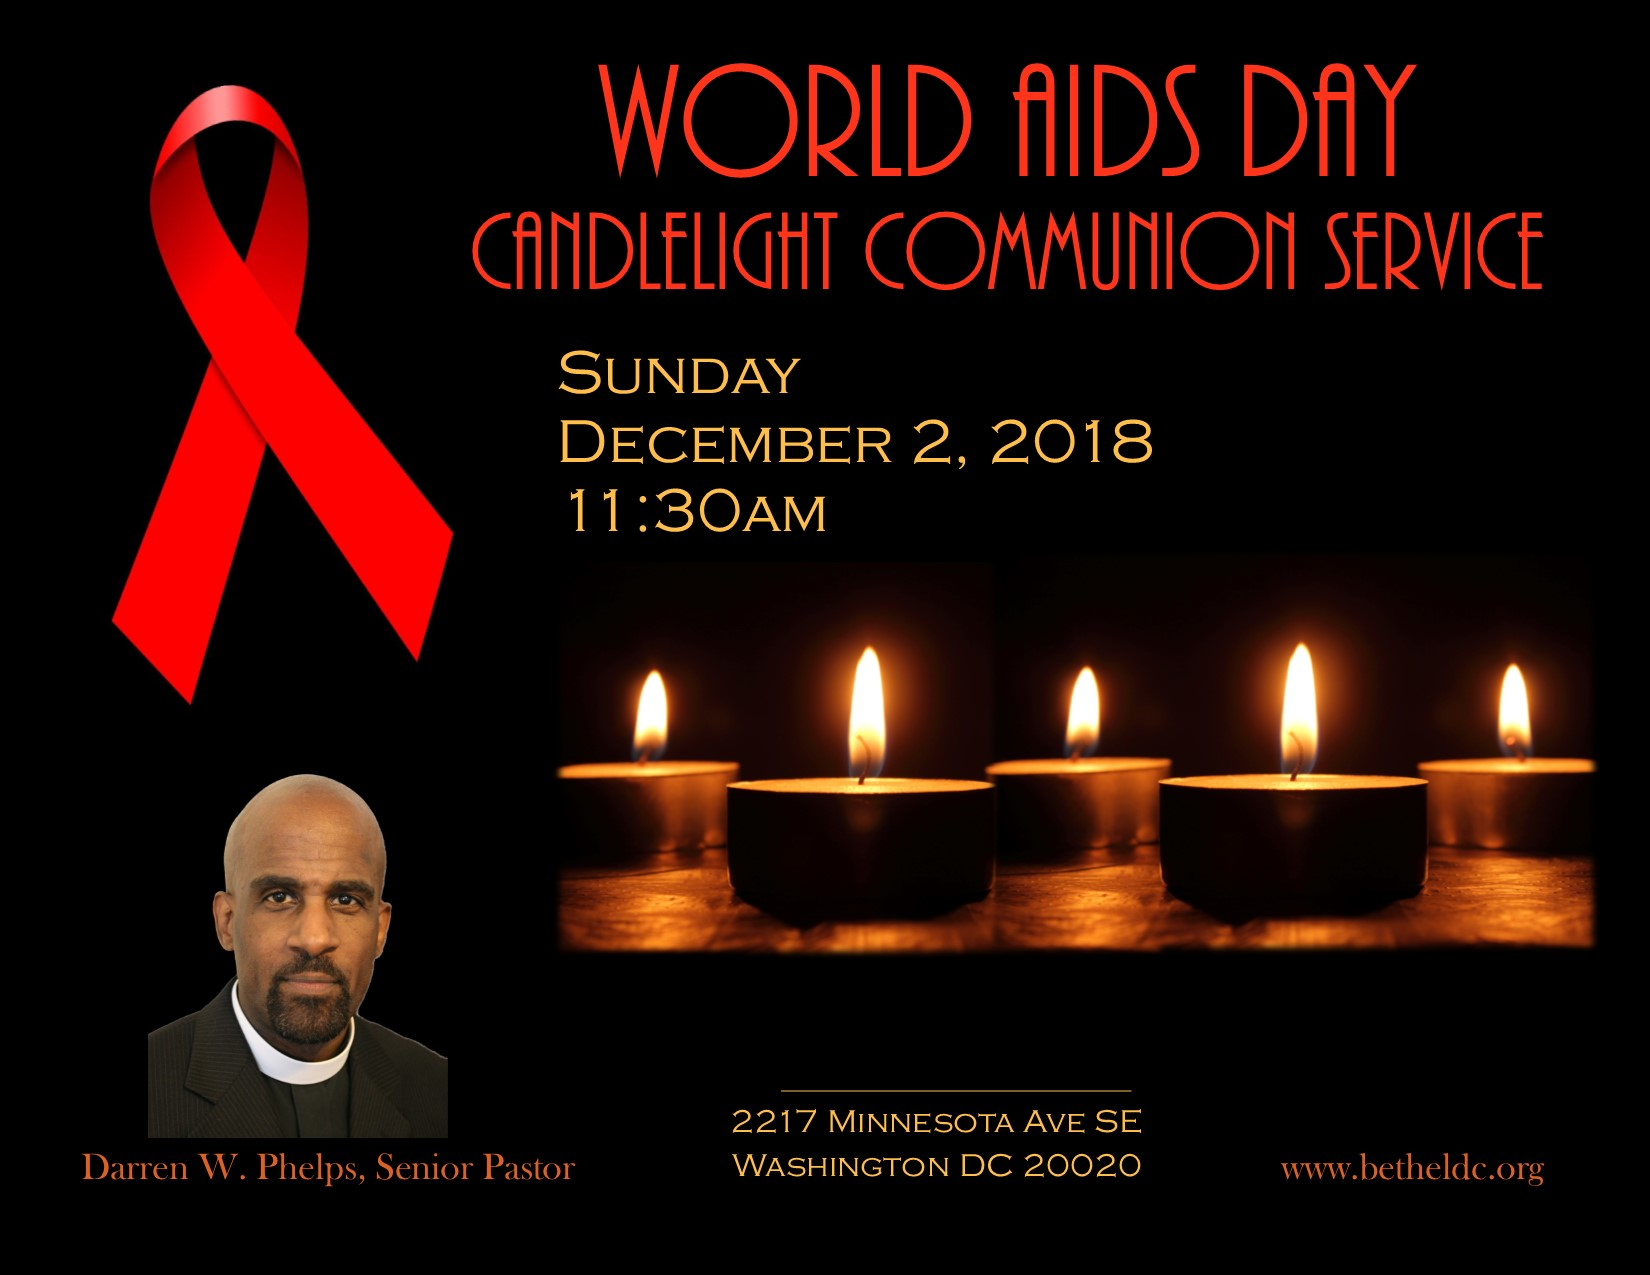 Bethel Christian Church DC will commemorate World AIDS Day on Sunday December 2, 2018 with a candlelight Communion service.